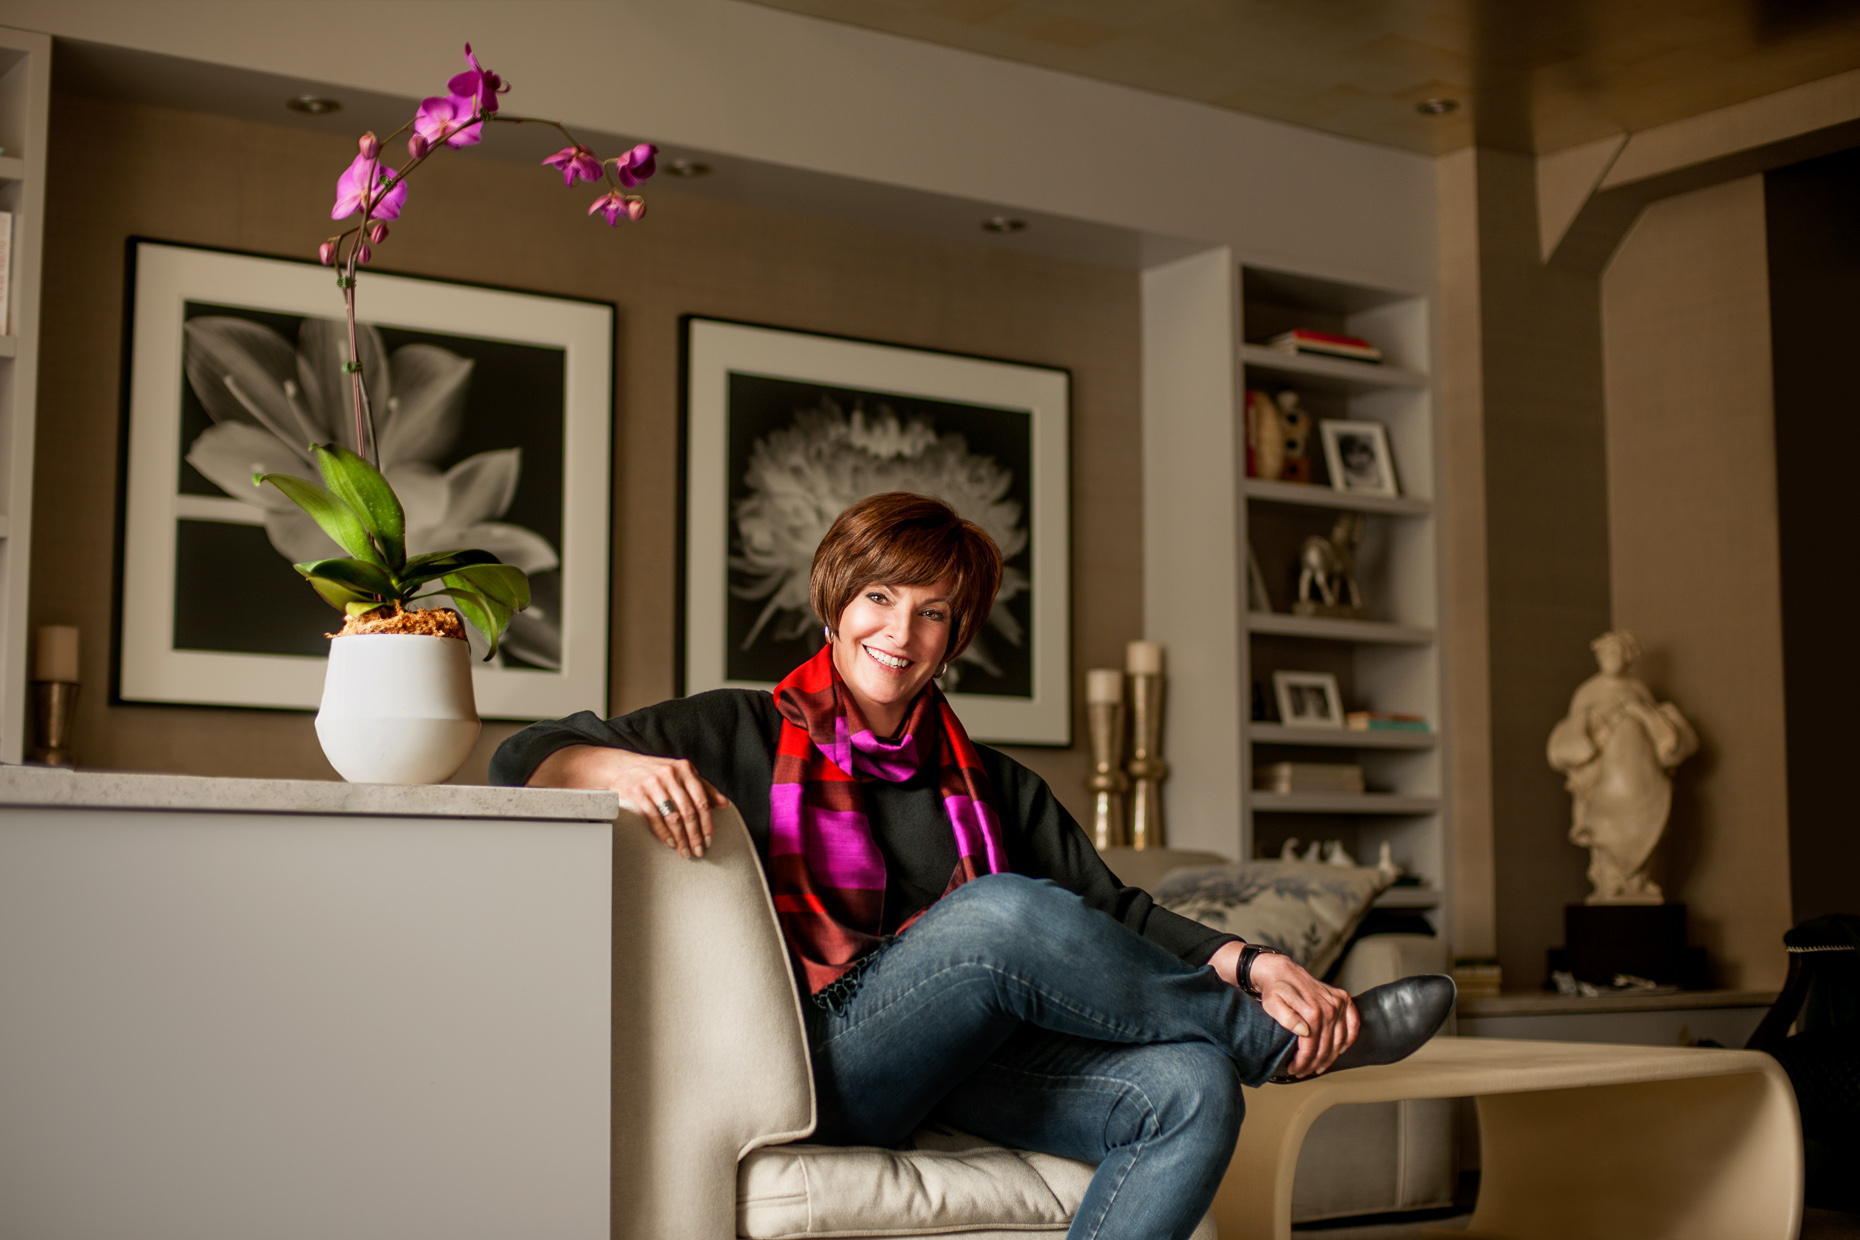 Glenna Crooks PhD in living room | Philadelphia photographer